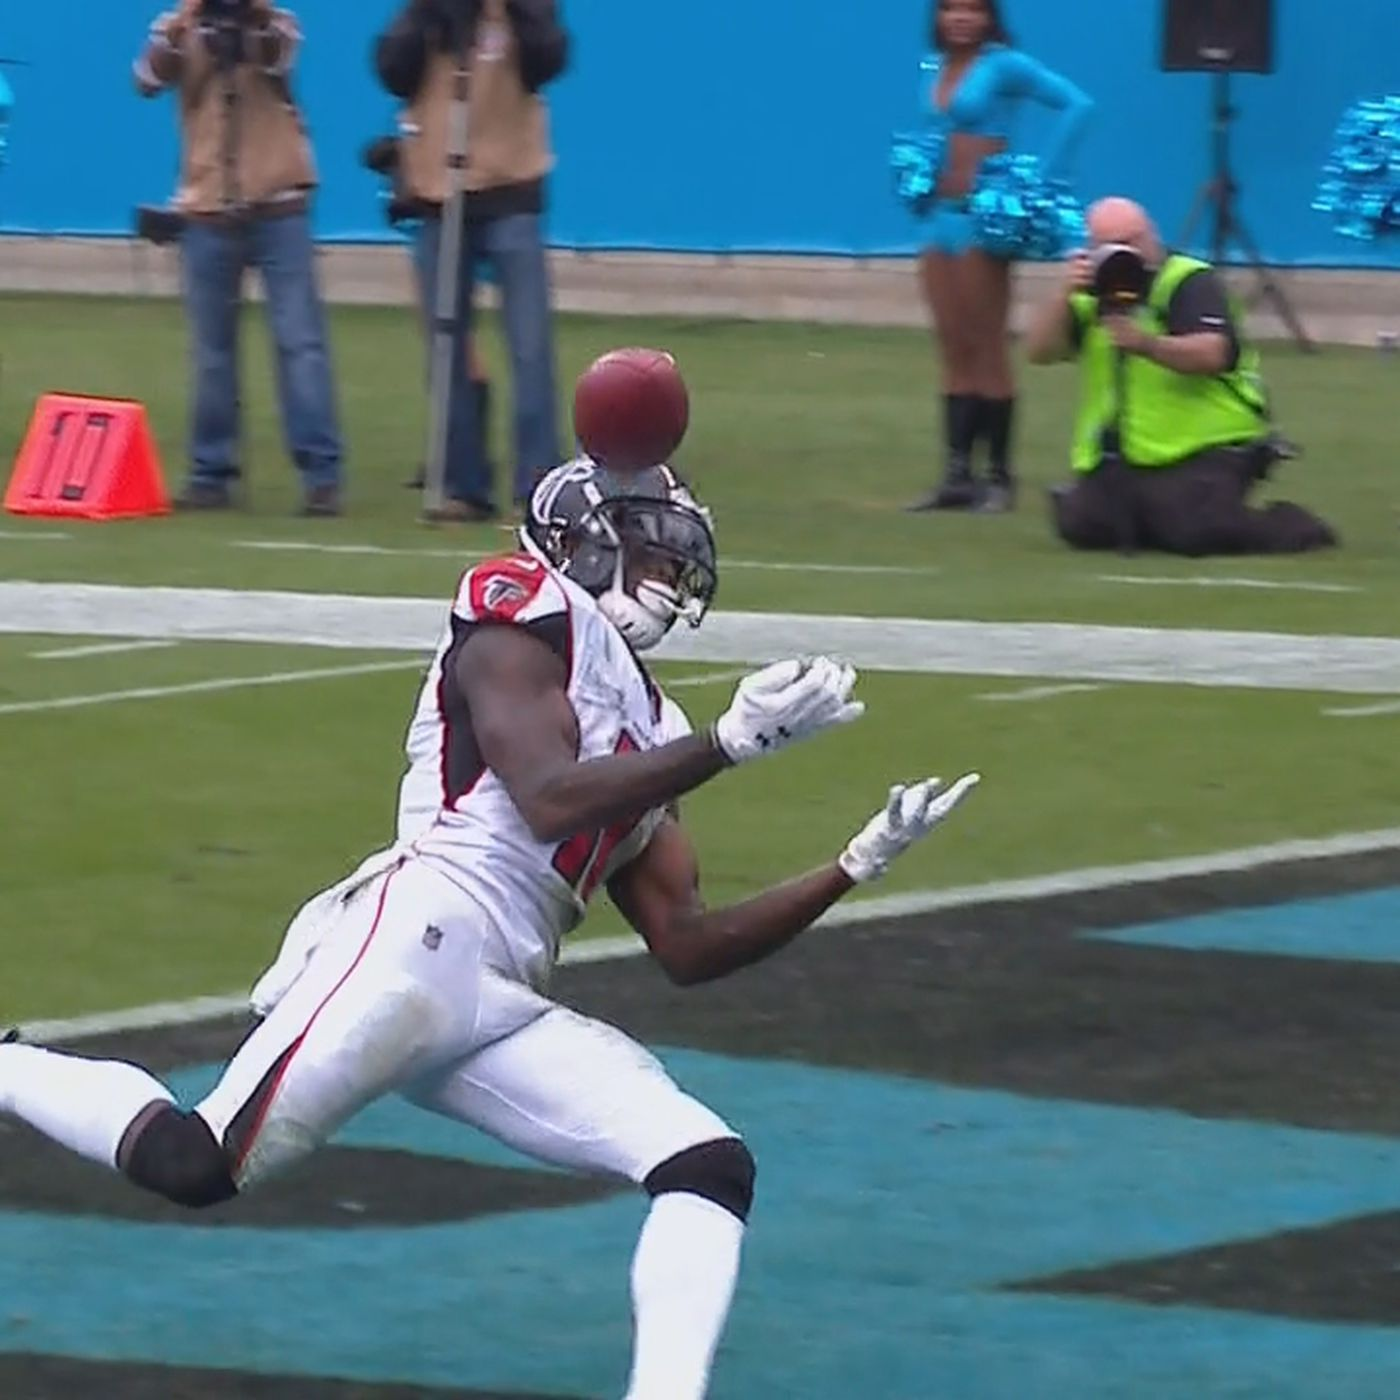 Julio Jones Dropped This Wide Open Td Pass In Heartbreaking Fashion Against The Panthers Sbnation Com